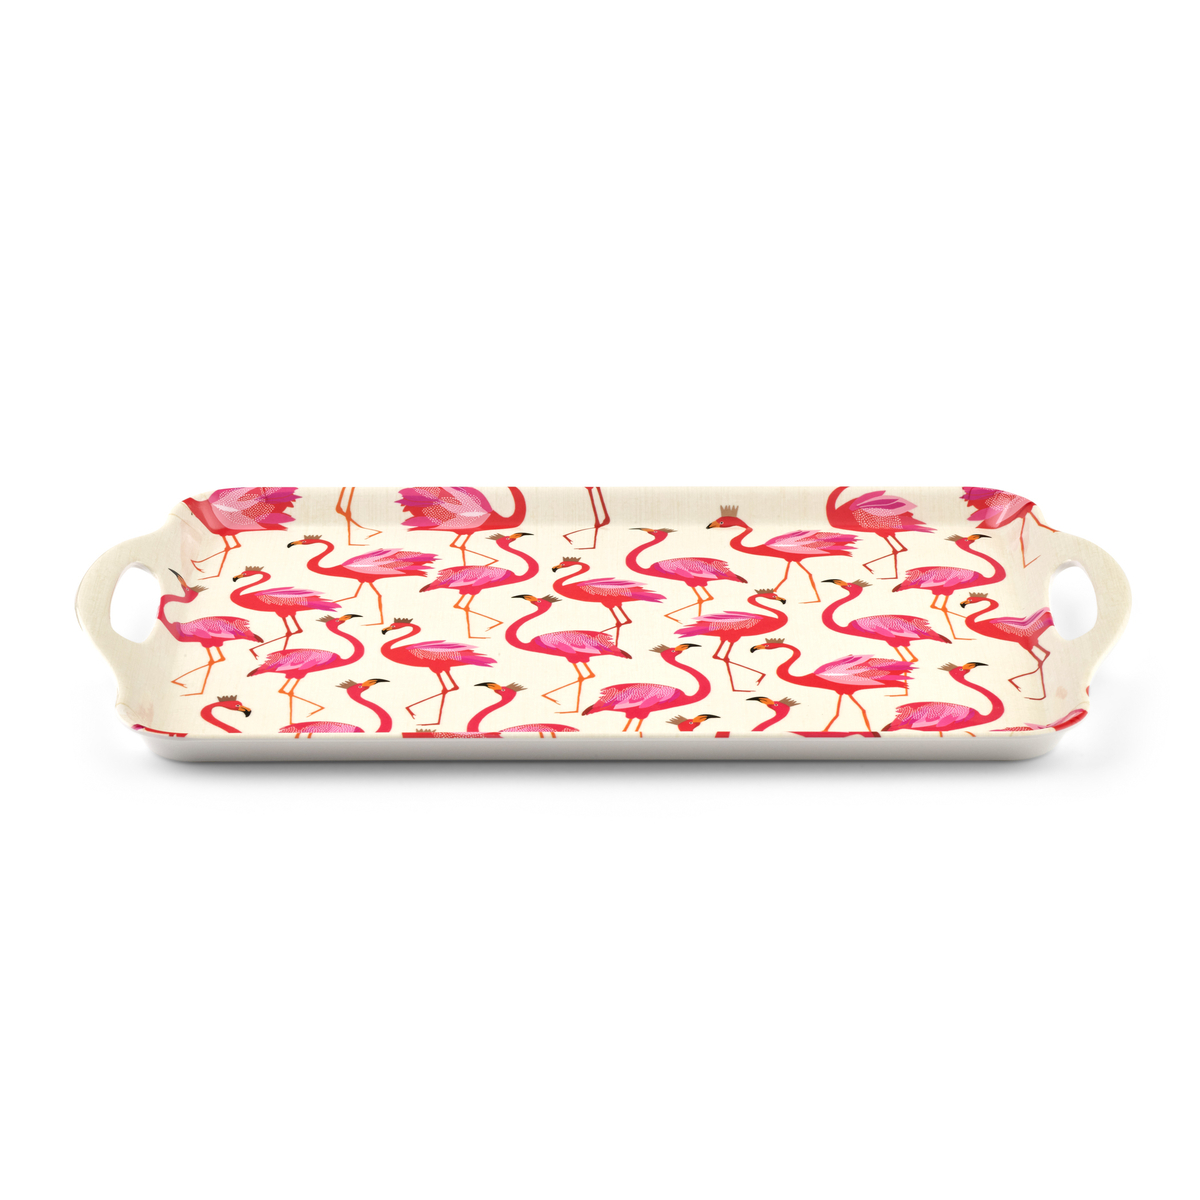 Sara Miller London for Pimpernel Flamingo Melamine Handled Tray image number 2